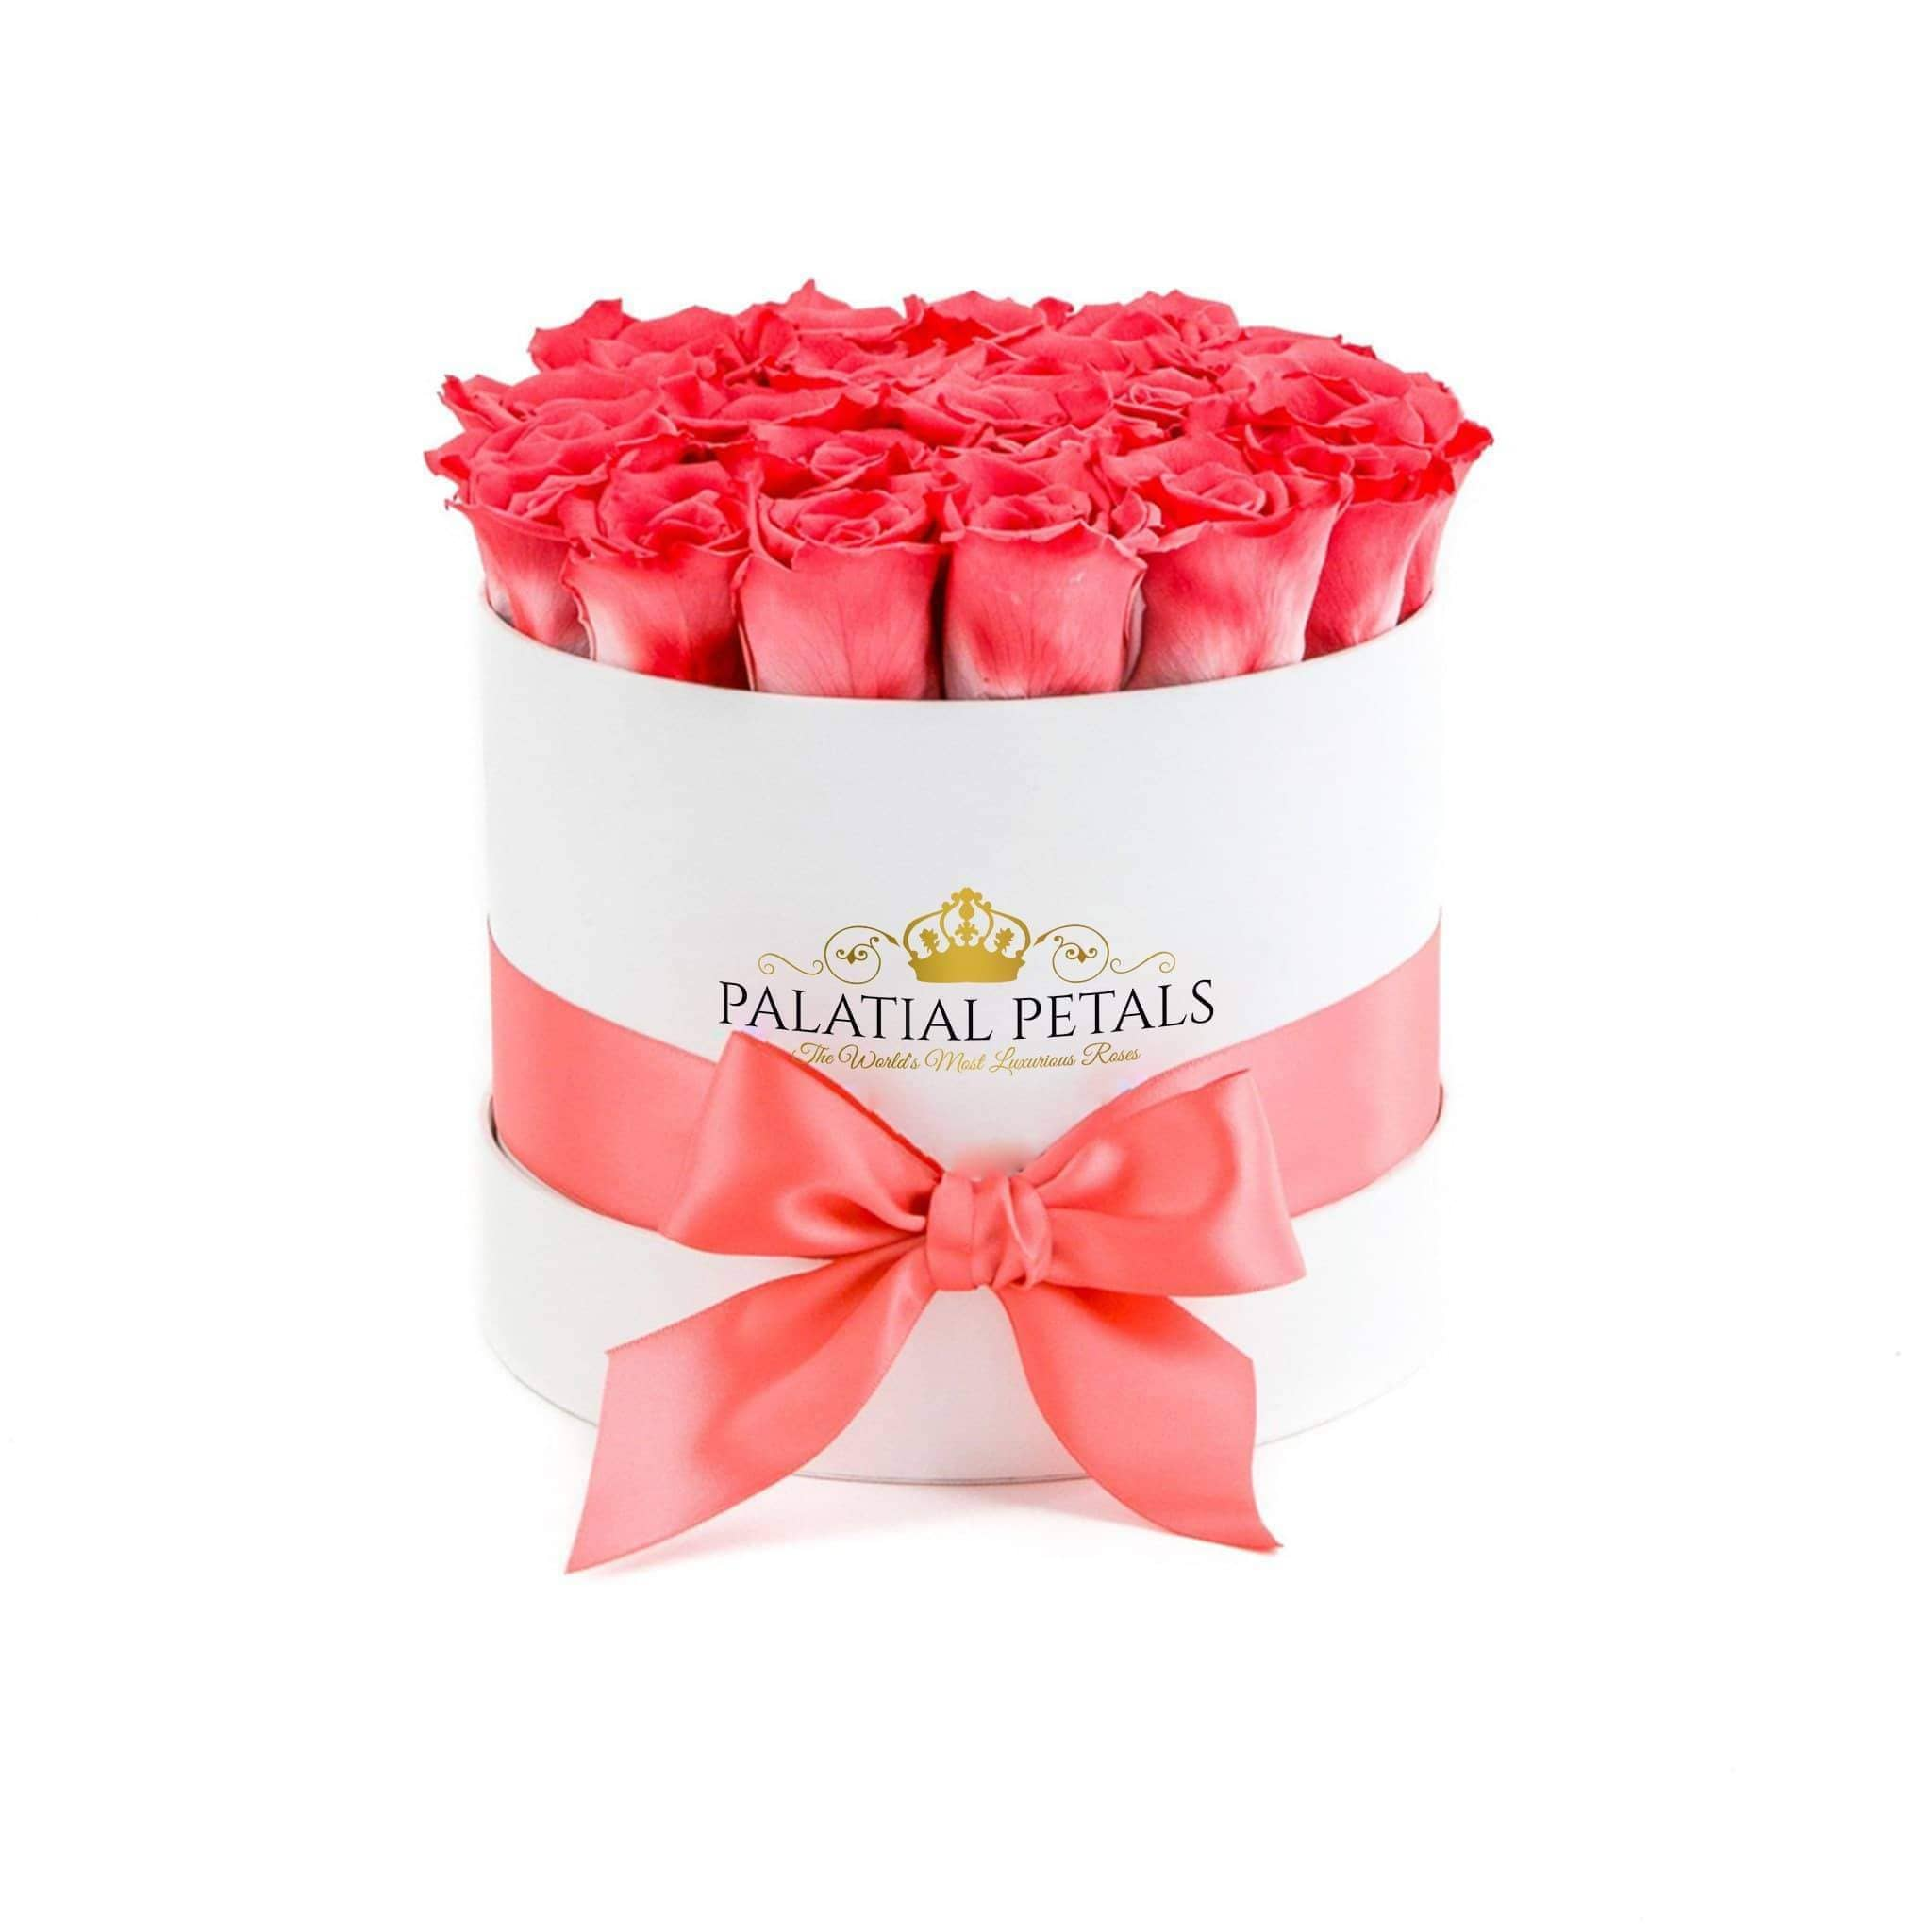 Coral Pink Roses That Last A Year - Classic Rose Box - Palatial Petals